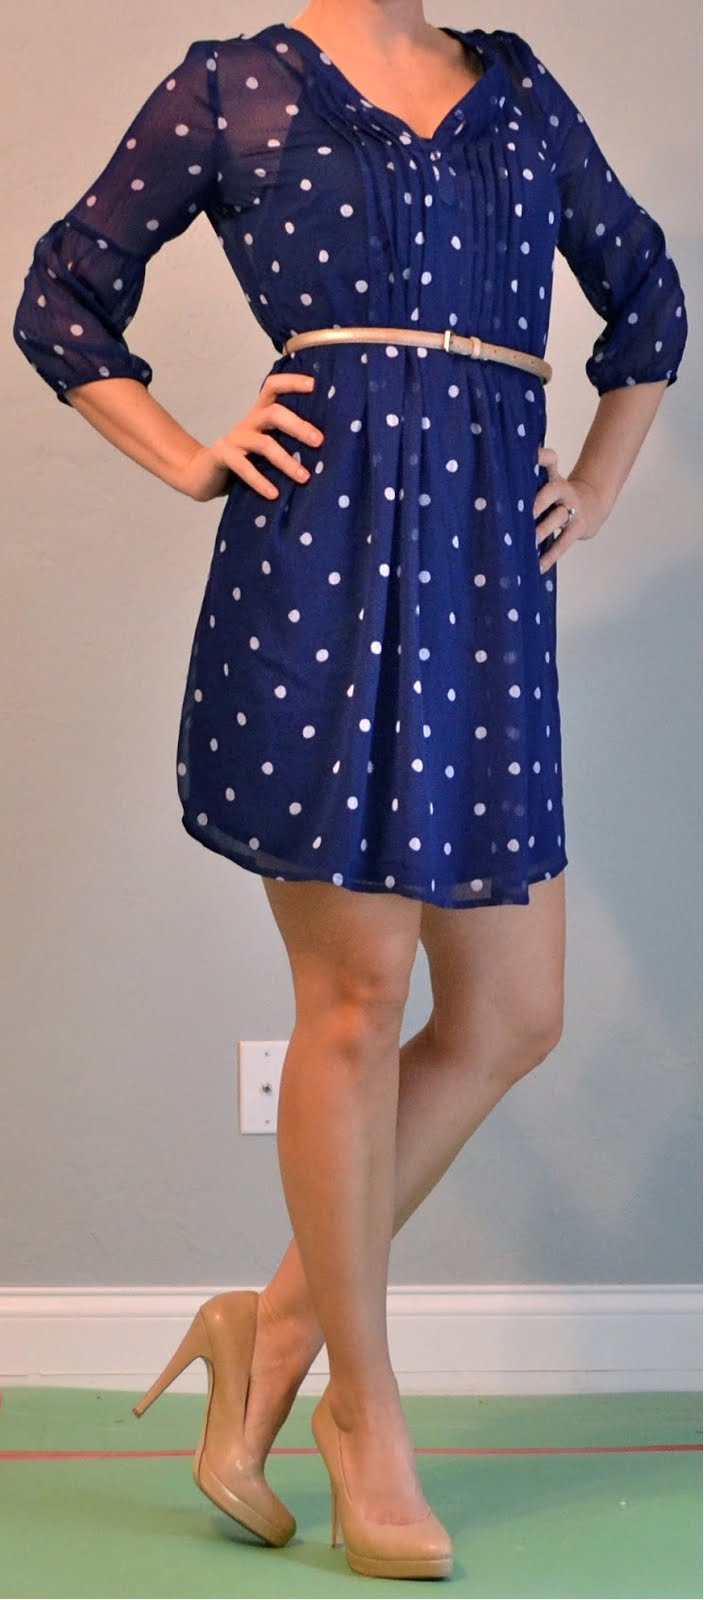 Outfit Posts Outfit Post Polka Dotted Dress Gold Belt